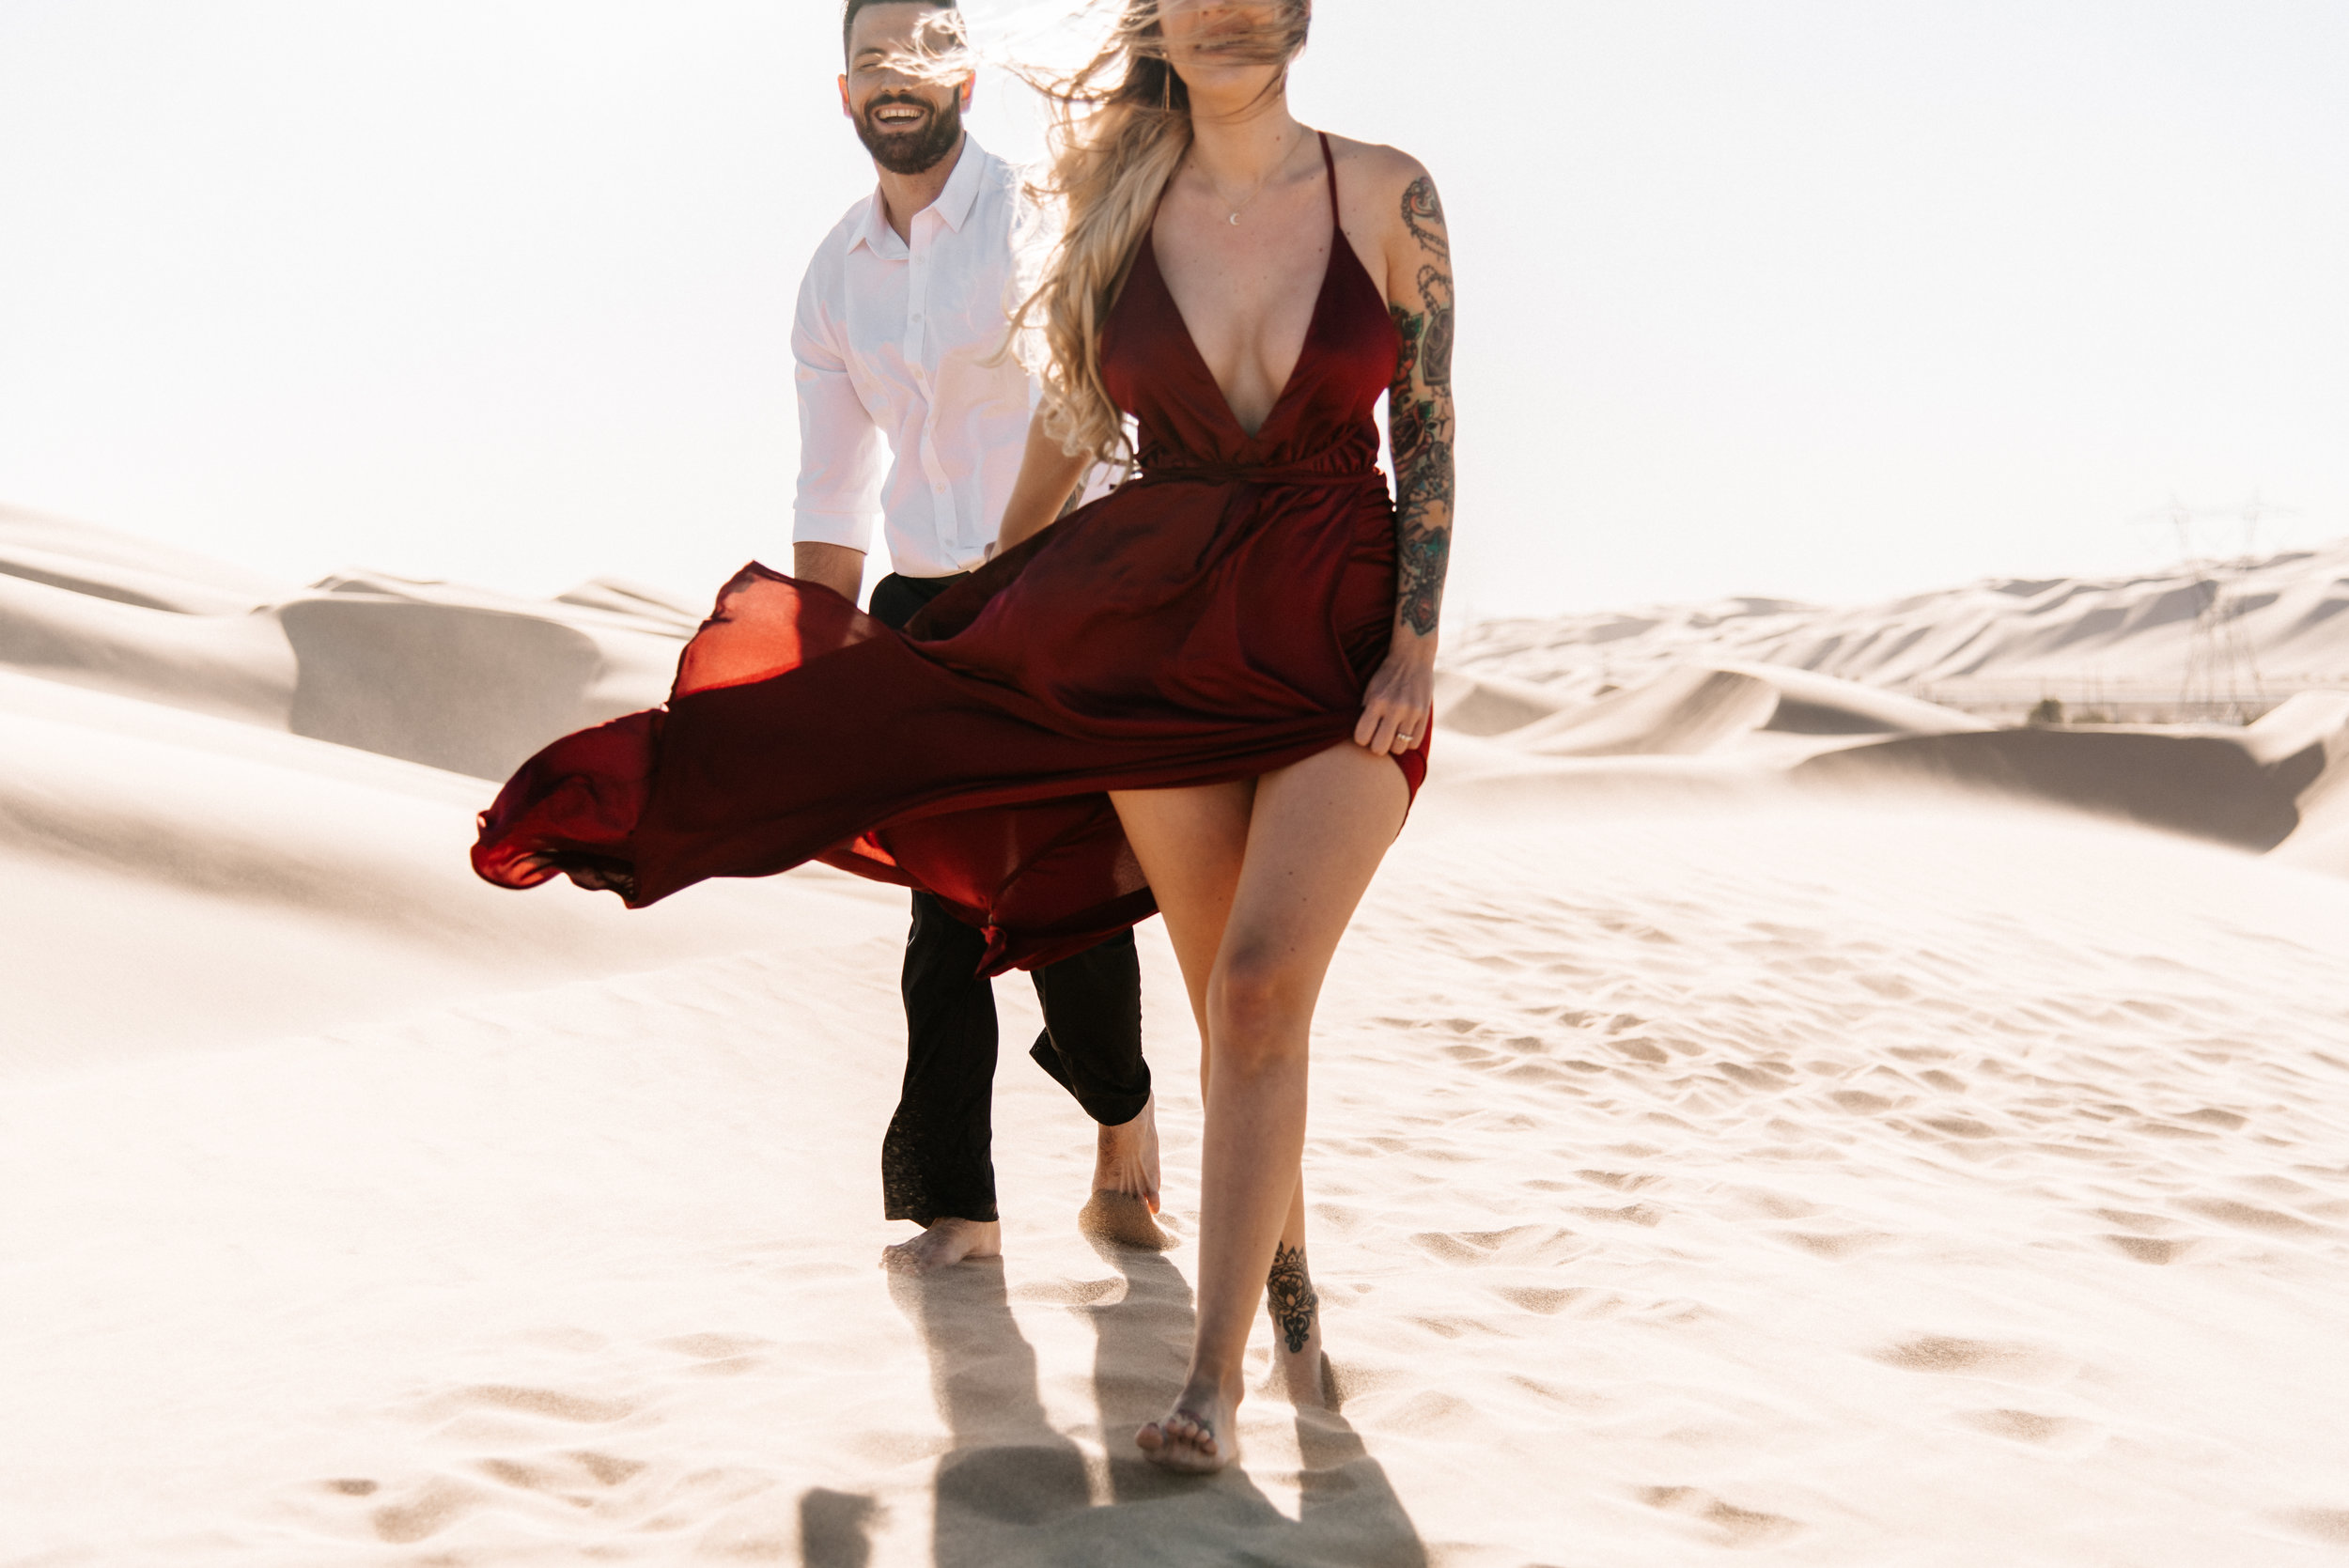 SamErica Studios - Modern San Diego Engagement Photographer - Adventure Engagement Session in Glamis Sand Dunes California-27.jpg